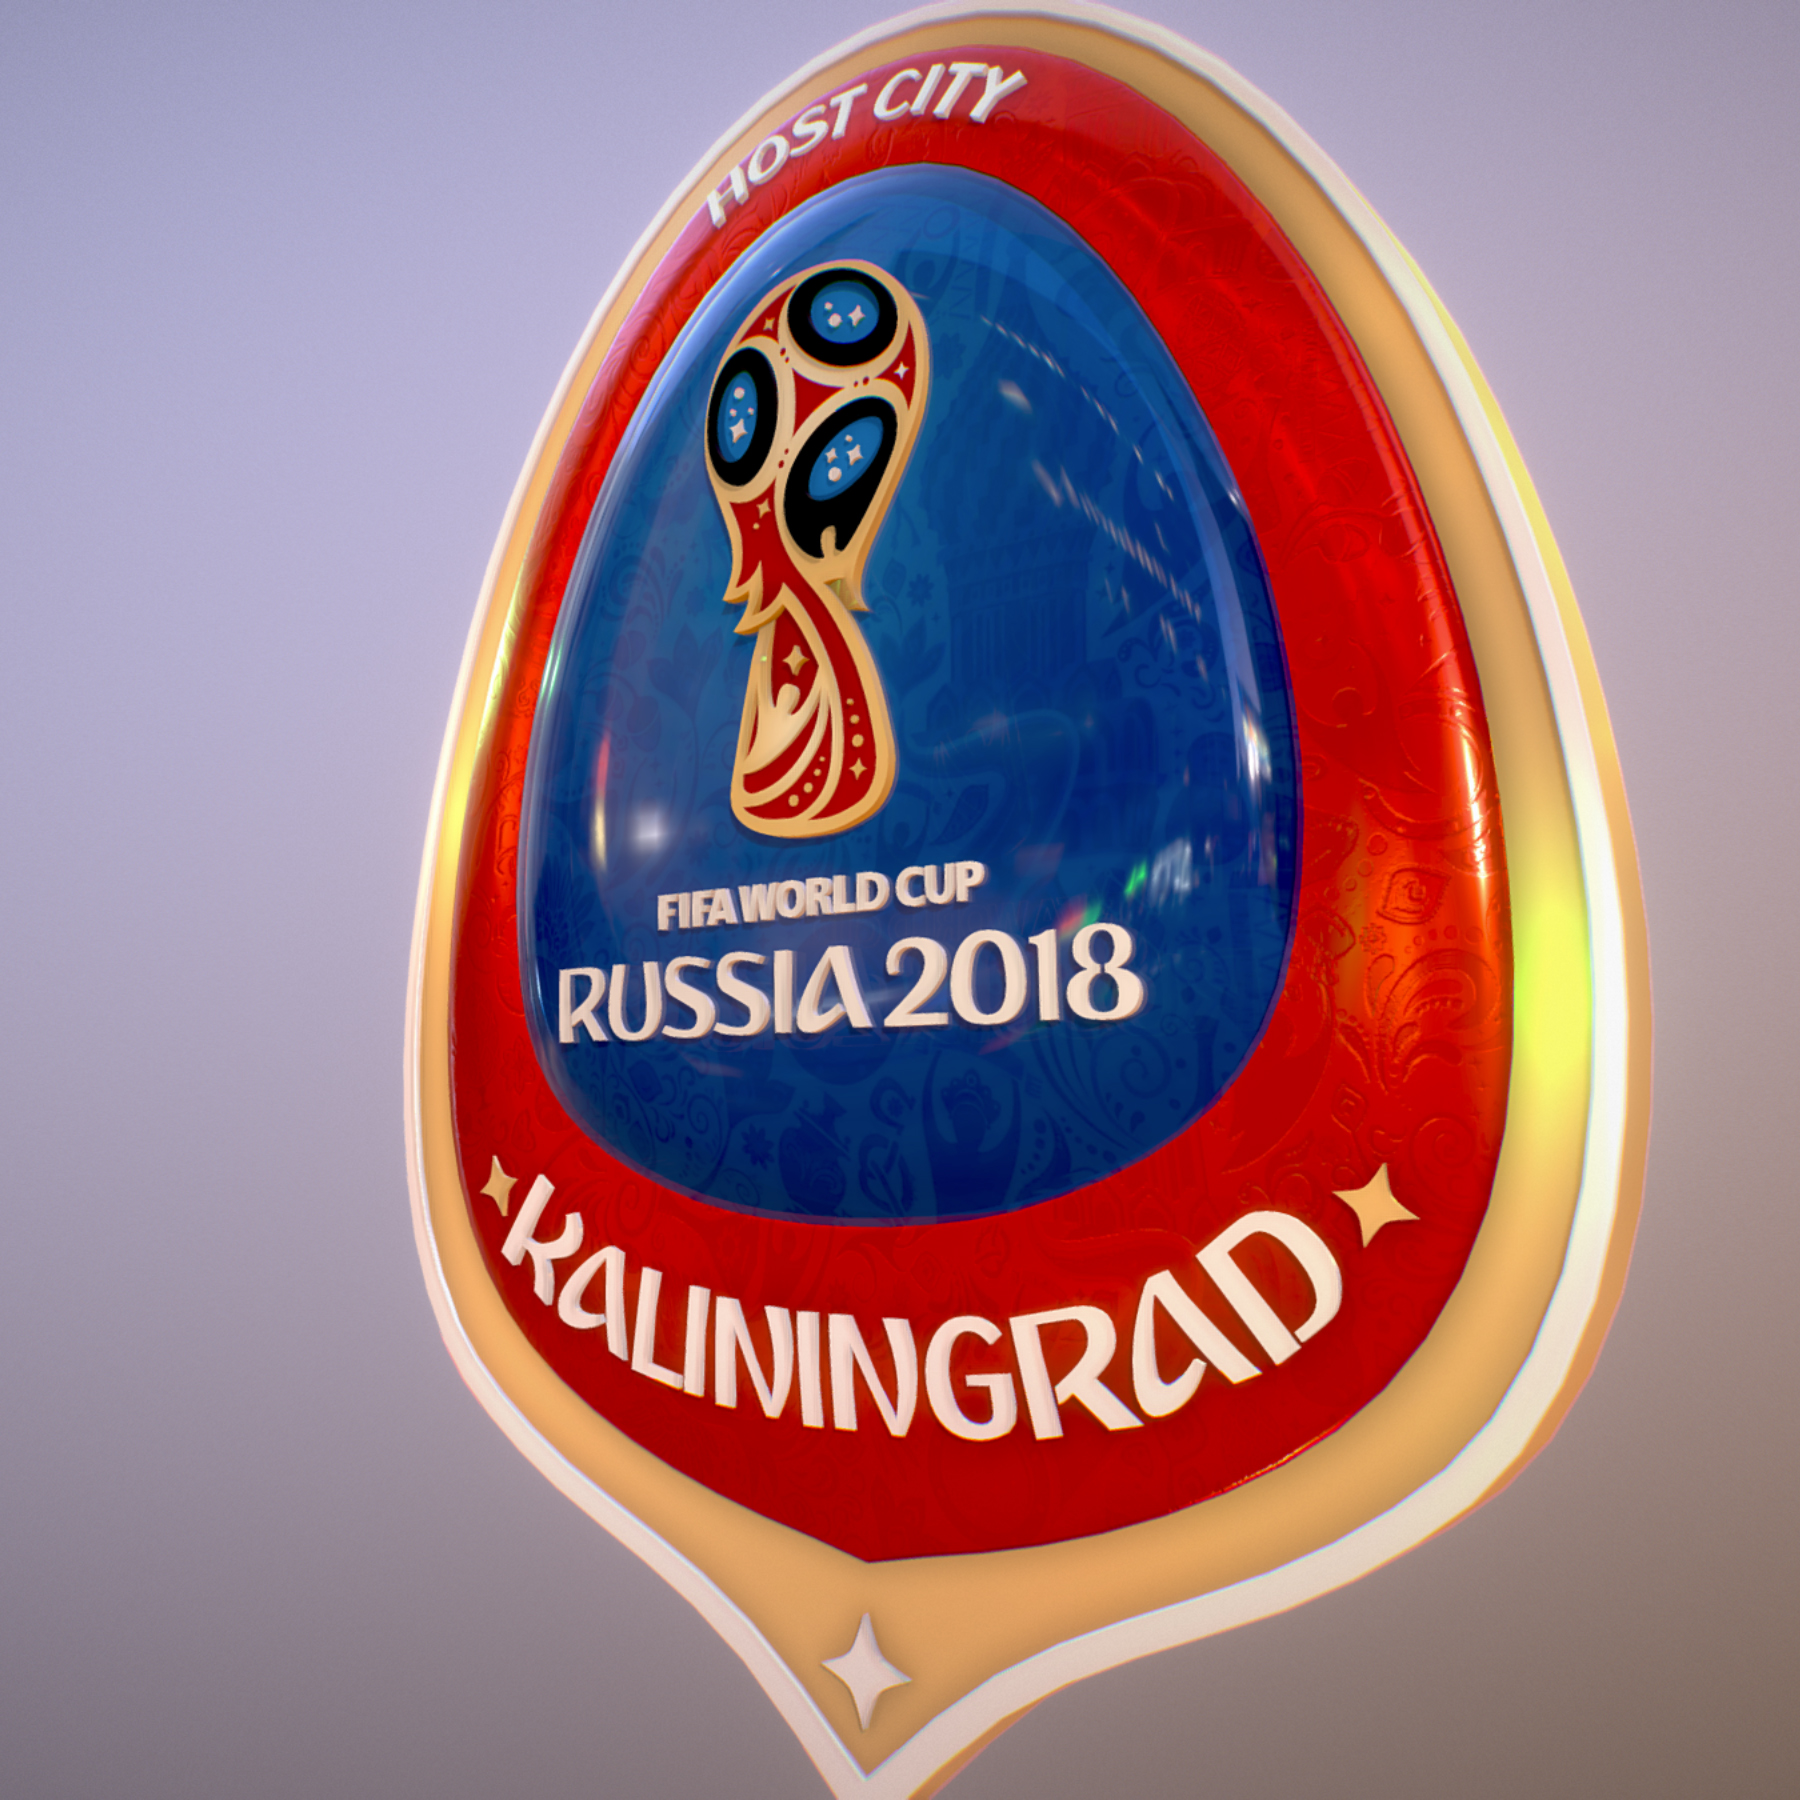 kaliningrad city world cup Rusija 2018 simbol 3d model max fbx jpeg jpg ma mb obj 271750